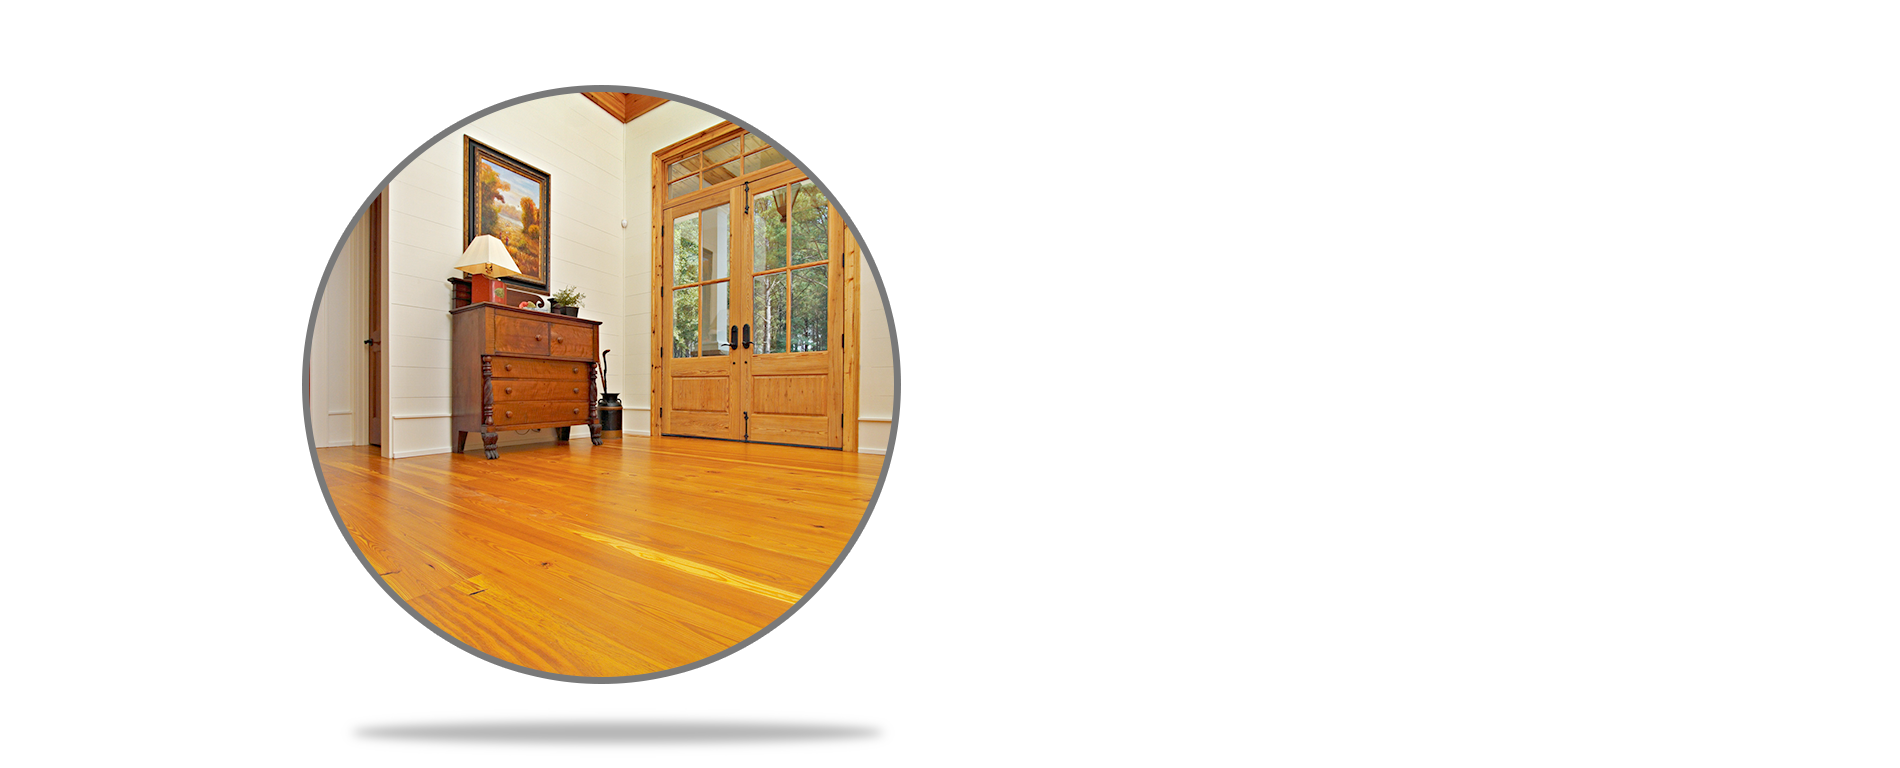 Hardwood Floors Charlotte Carolina Wood Flooring - Hardwood floors charlotte nc